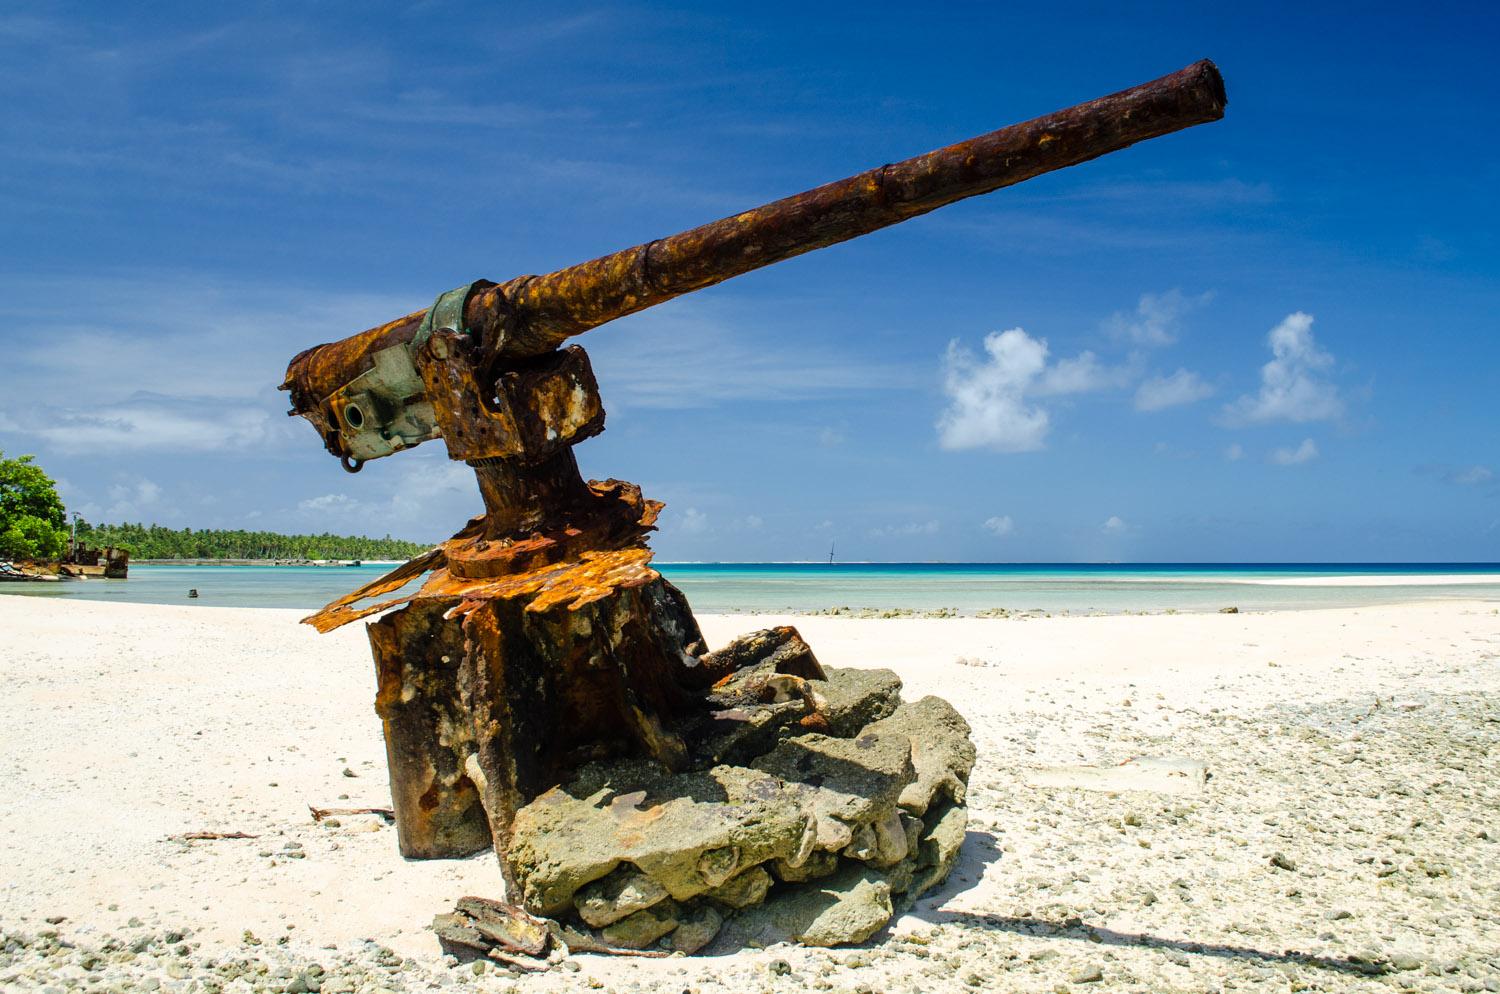 An anti-aircraft cannon exposed over the years from erosion